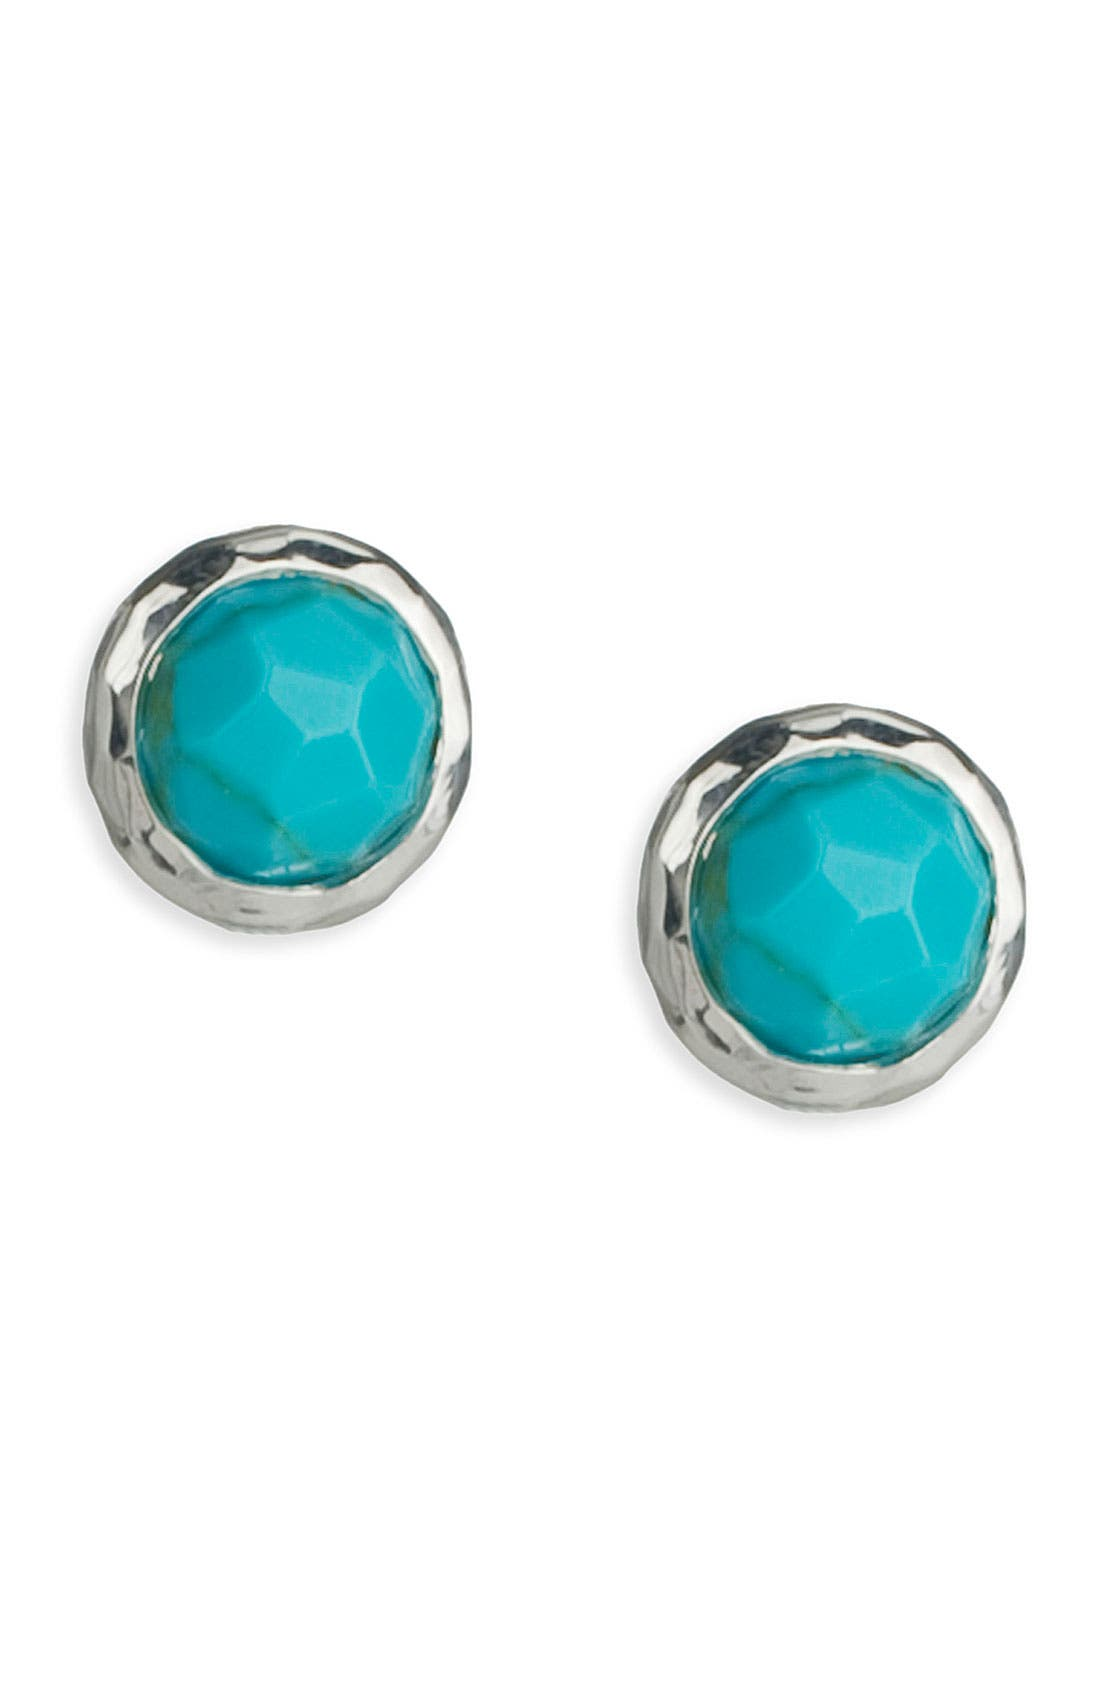 Alternate Image 1 Selected - Ippolita 'Rock Candy' Semiprecious Stud Earrings